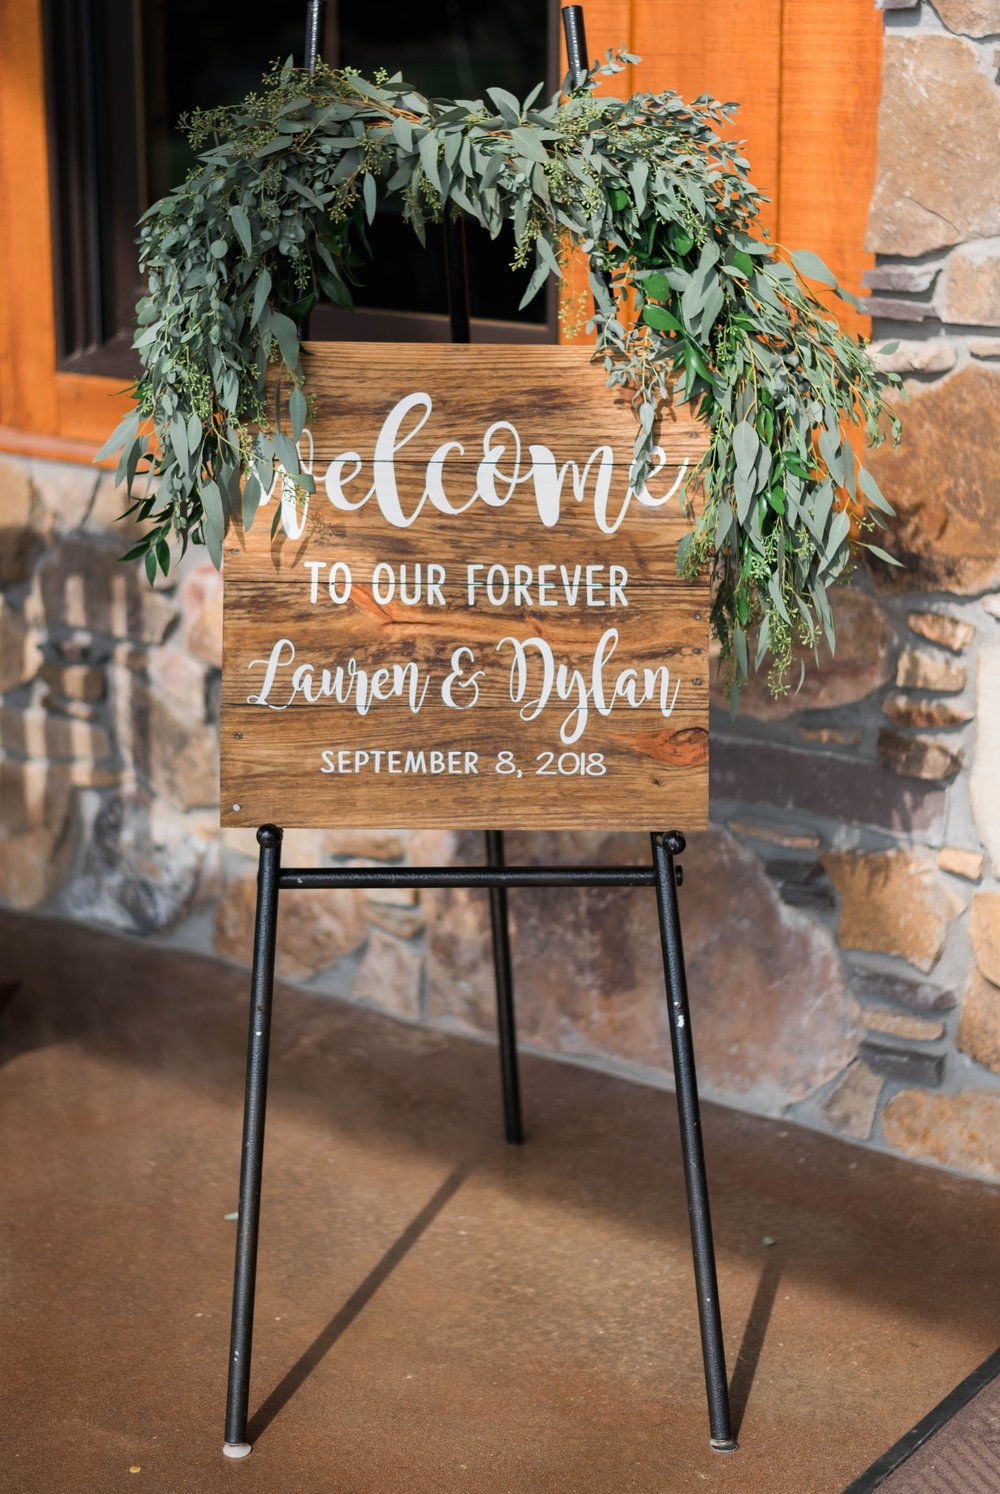 atkinson farms_VirginiaWeddingPhotographer_LynchburgWeddingPhotographer_DylanandLauren 46.jpg